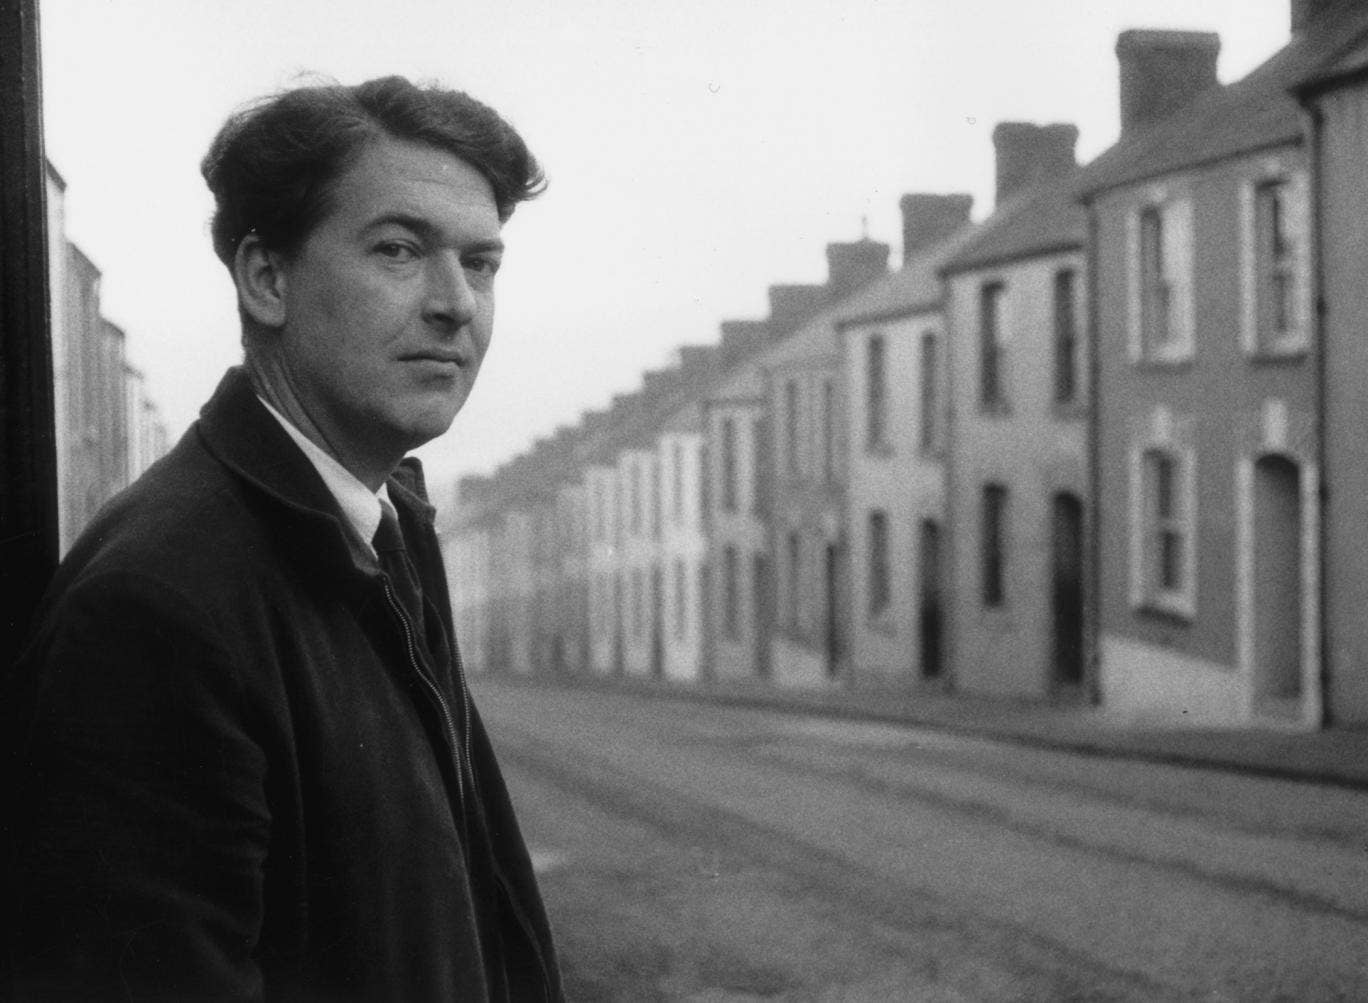 Kingsley Amis (pictured) and Philip Larkin were brought together by a liking for girls, books, and jazz